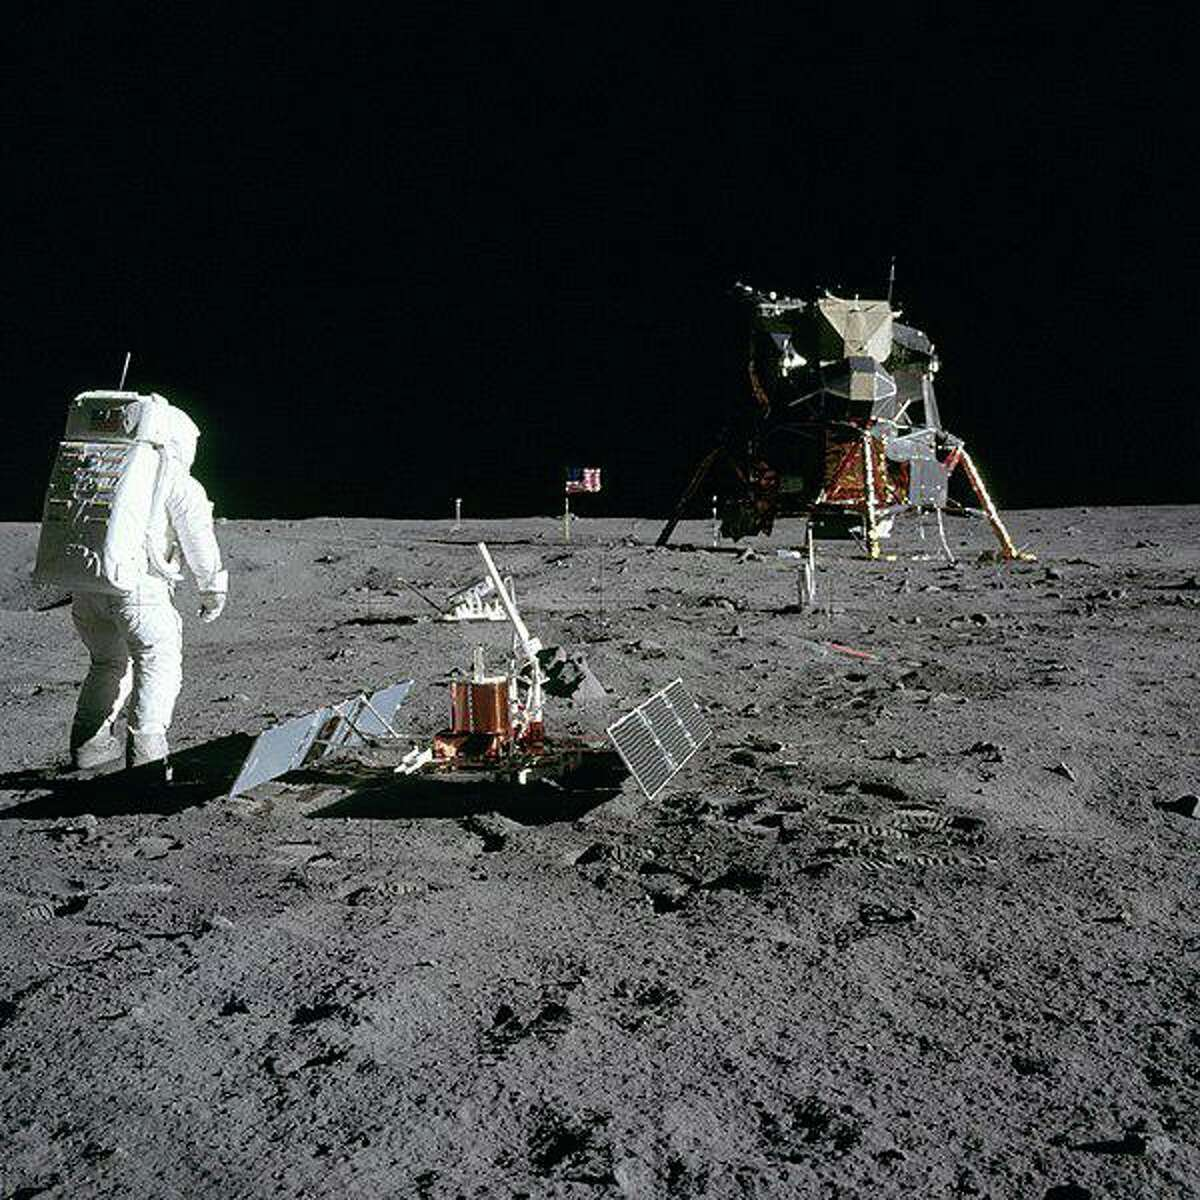 Astronaut Buzz Aldrin on the Moon during the Apollo 11 mission.